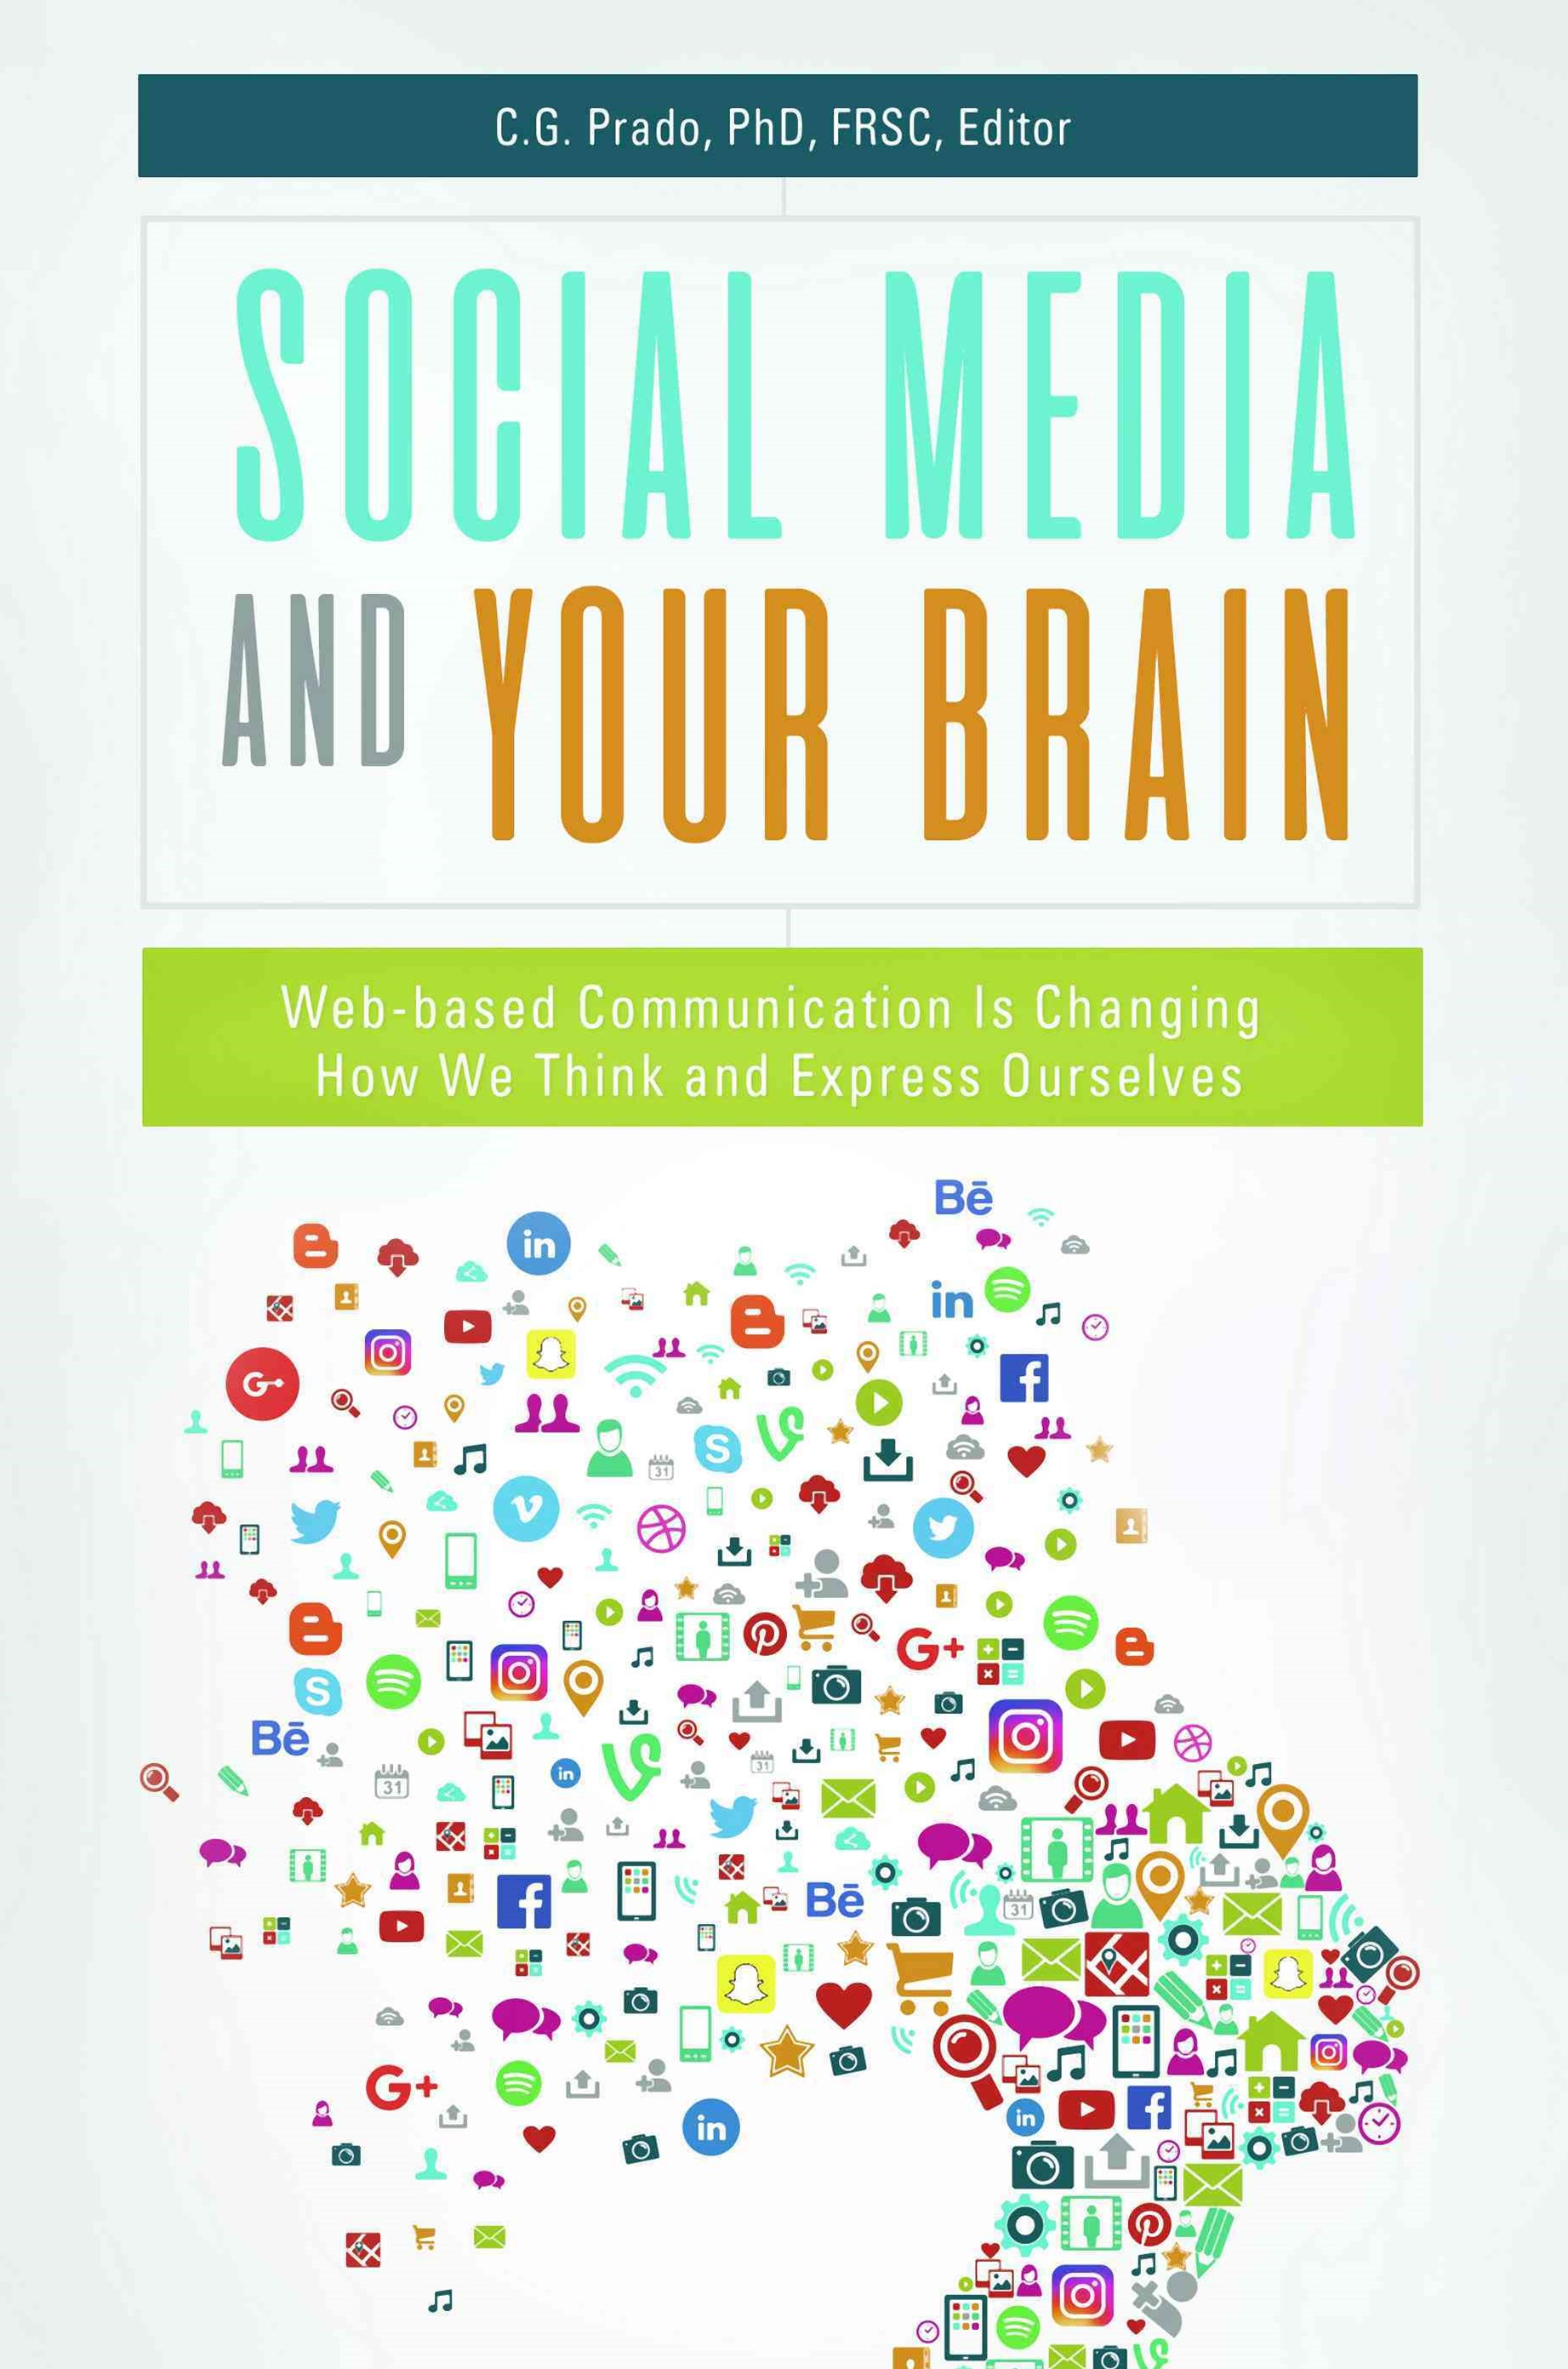 Social Media and Your Brain